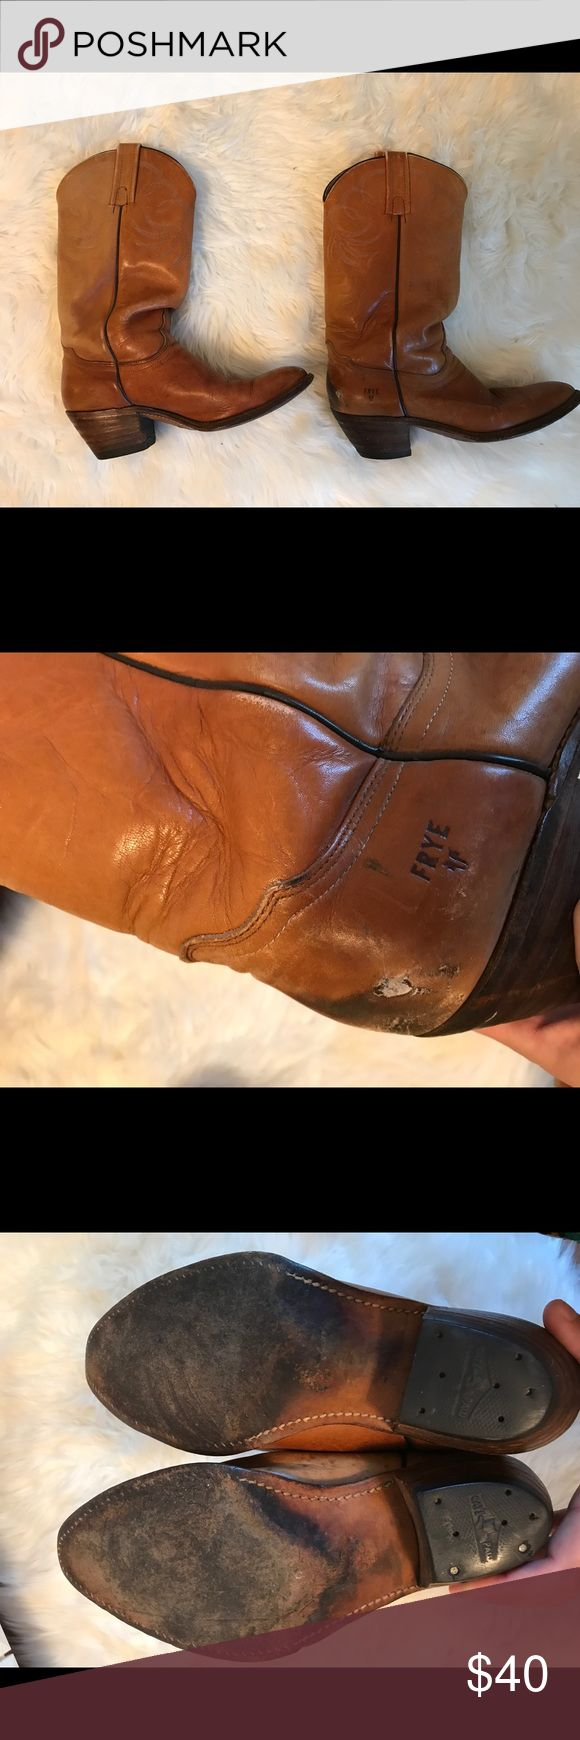 Women's Frye Cowboy Boots Previously loved 9.5D Women's Frye Cowboy boots! These are a re-posh, just never had the chance to wear them. Photos reflect wear, I believe they have been resoled as well. Plenty of life left! These are a steal for the upcoming cool weather 🍁🍂 Frye Shoes Heeled Boots